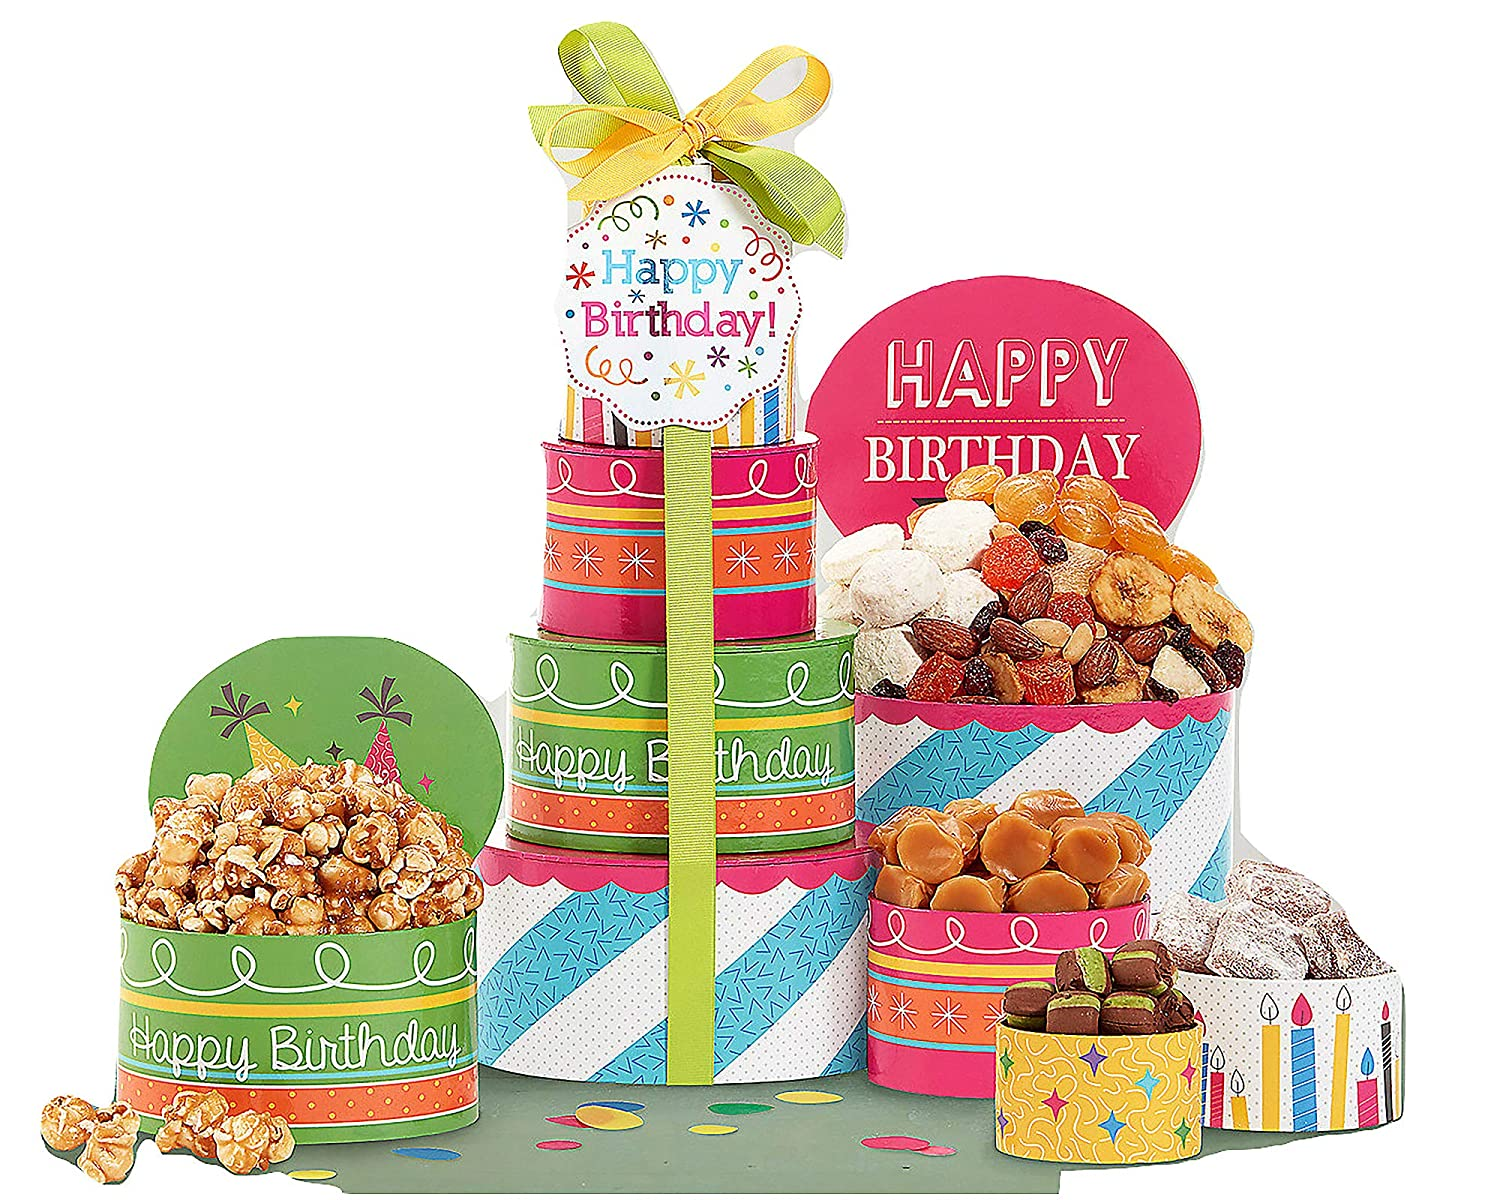 Amazon Make A Wish Happy Birthday Gift Basket Gourmet For Their Special Day Great Adults And Children Perfect Boy